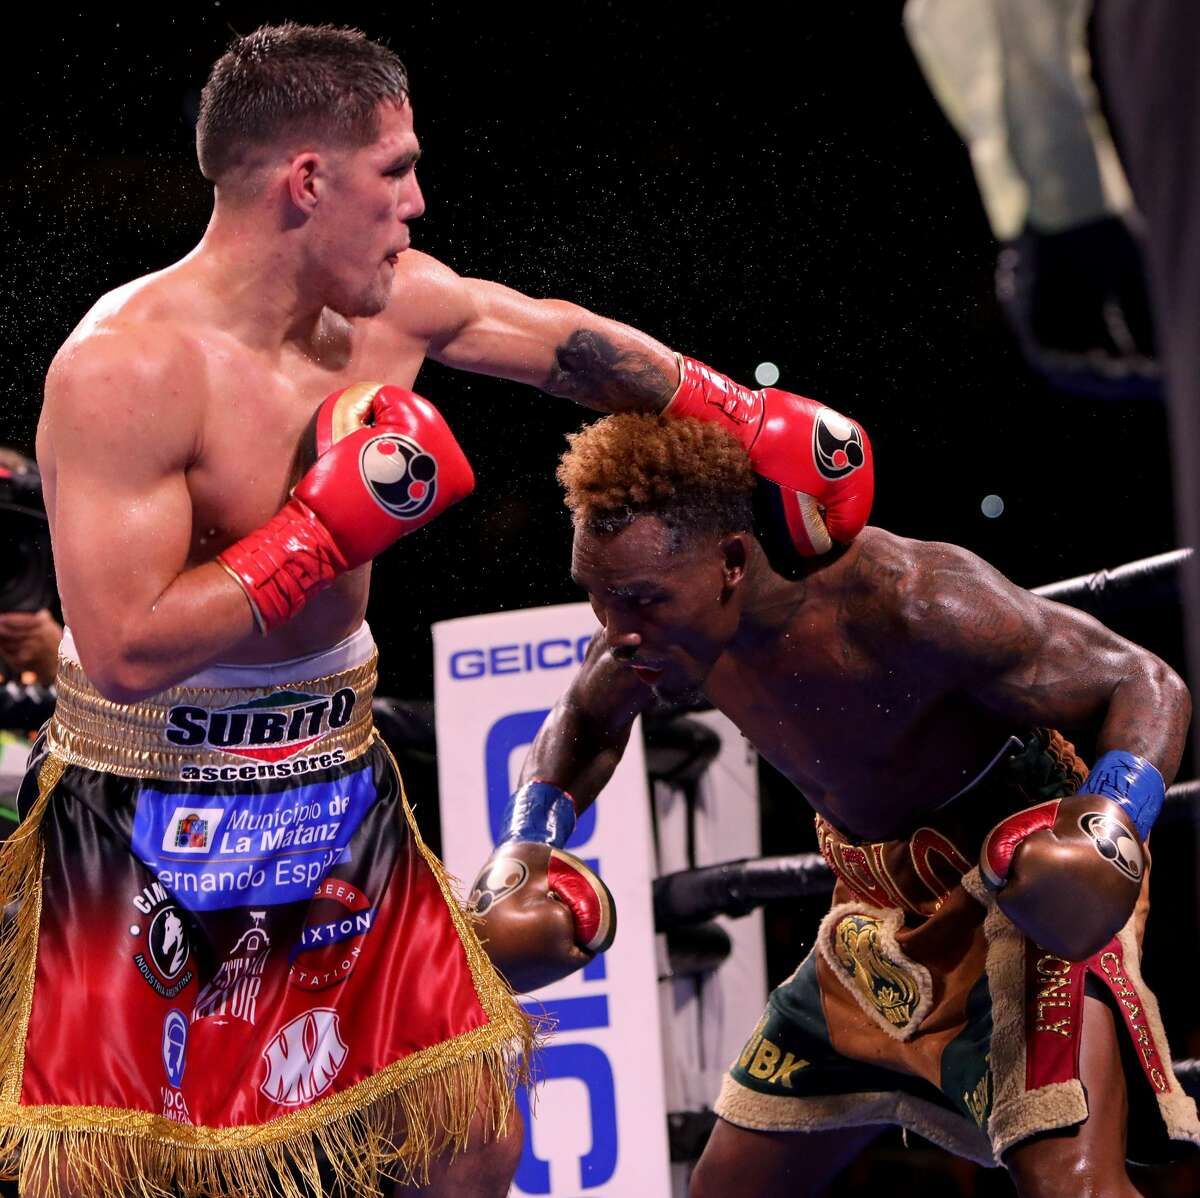 SAN ANTONIO, TX - JULY 17: Jermell Charlo (R) and Brian Castano (L) exchange punches during their Super Welterweight fight at AT&T Center on July 17, 2021 in San Antonio, Texas. The Jermell Charlo and Brian Castano fight ended in a split draw. (Photo by Edward A. Ornelas/Getty Images)